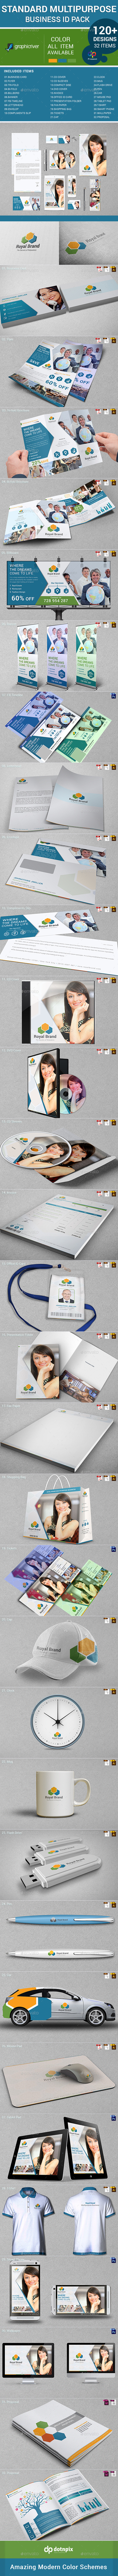 Standard Multipurpose Business ID Pack - Stationery Print Templates